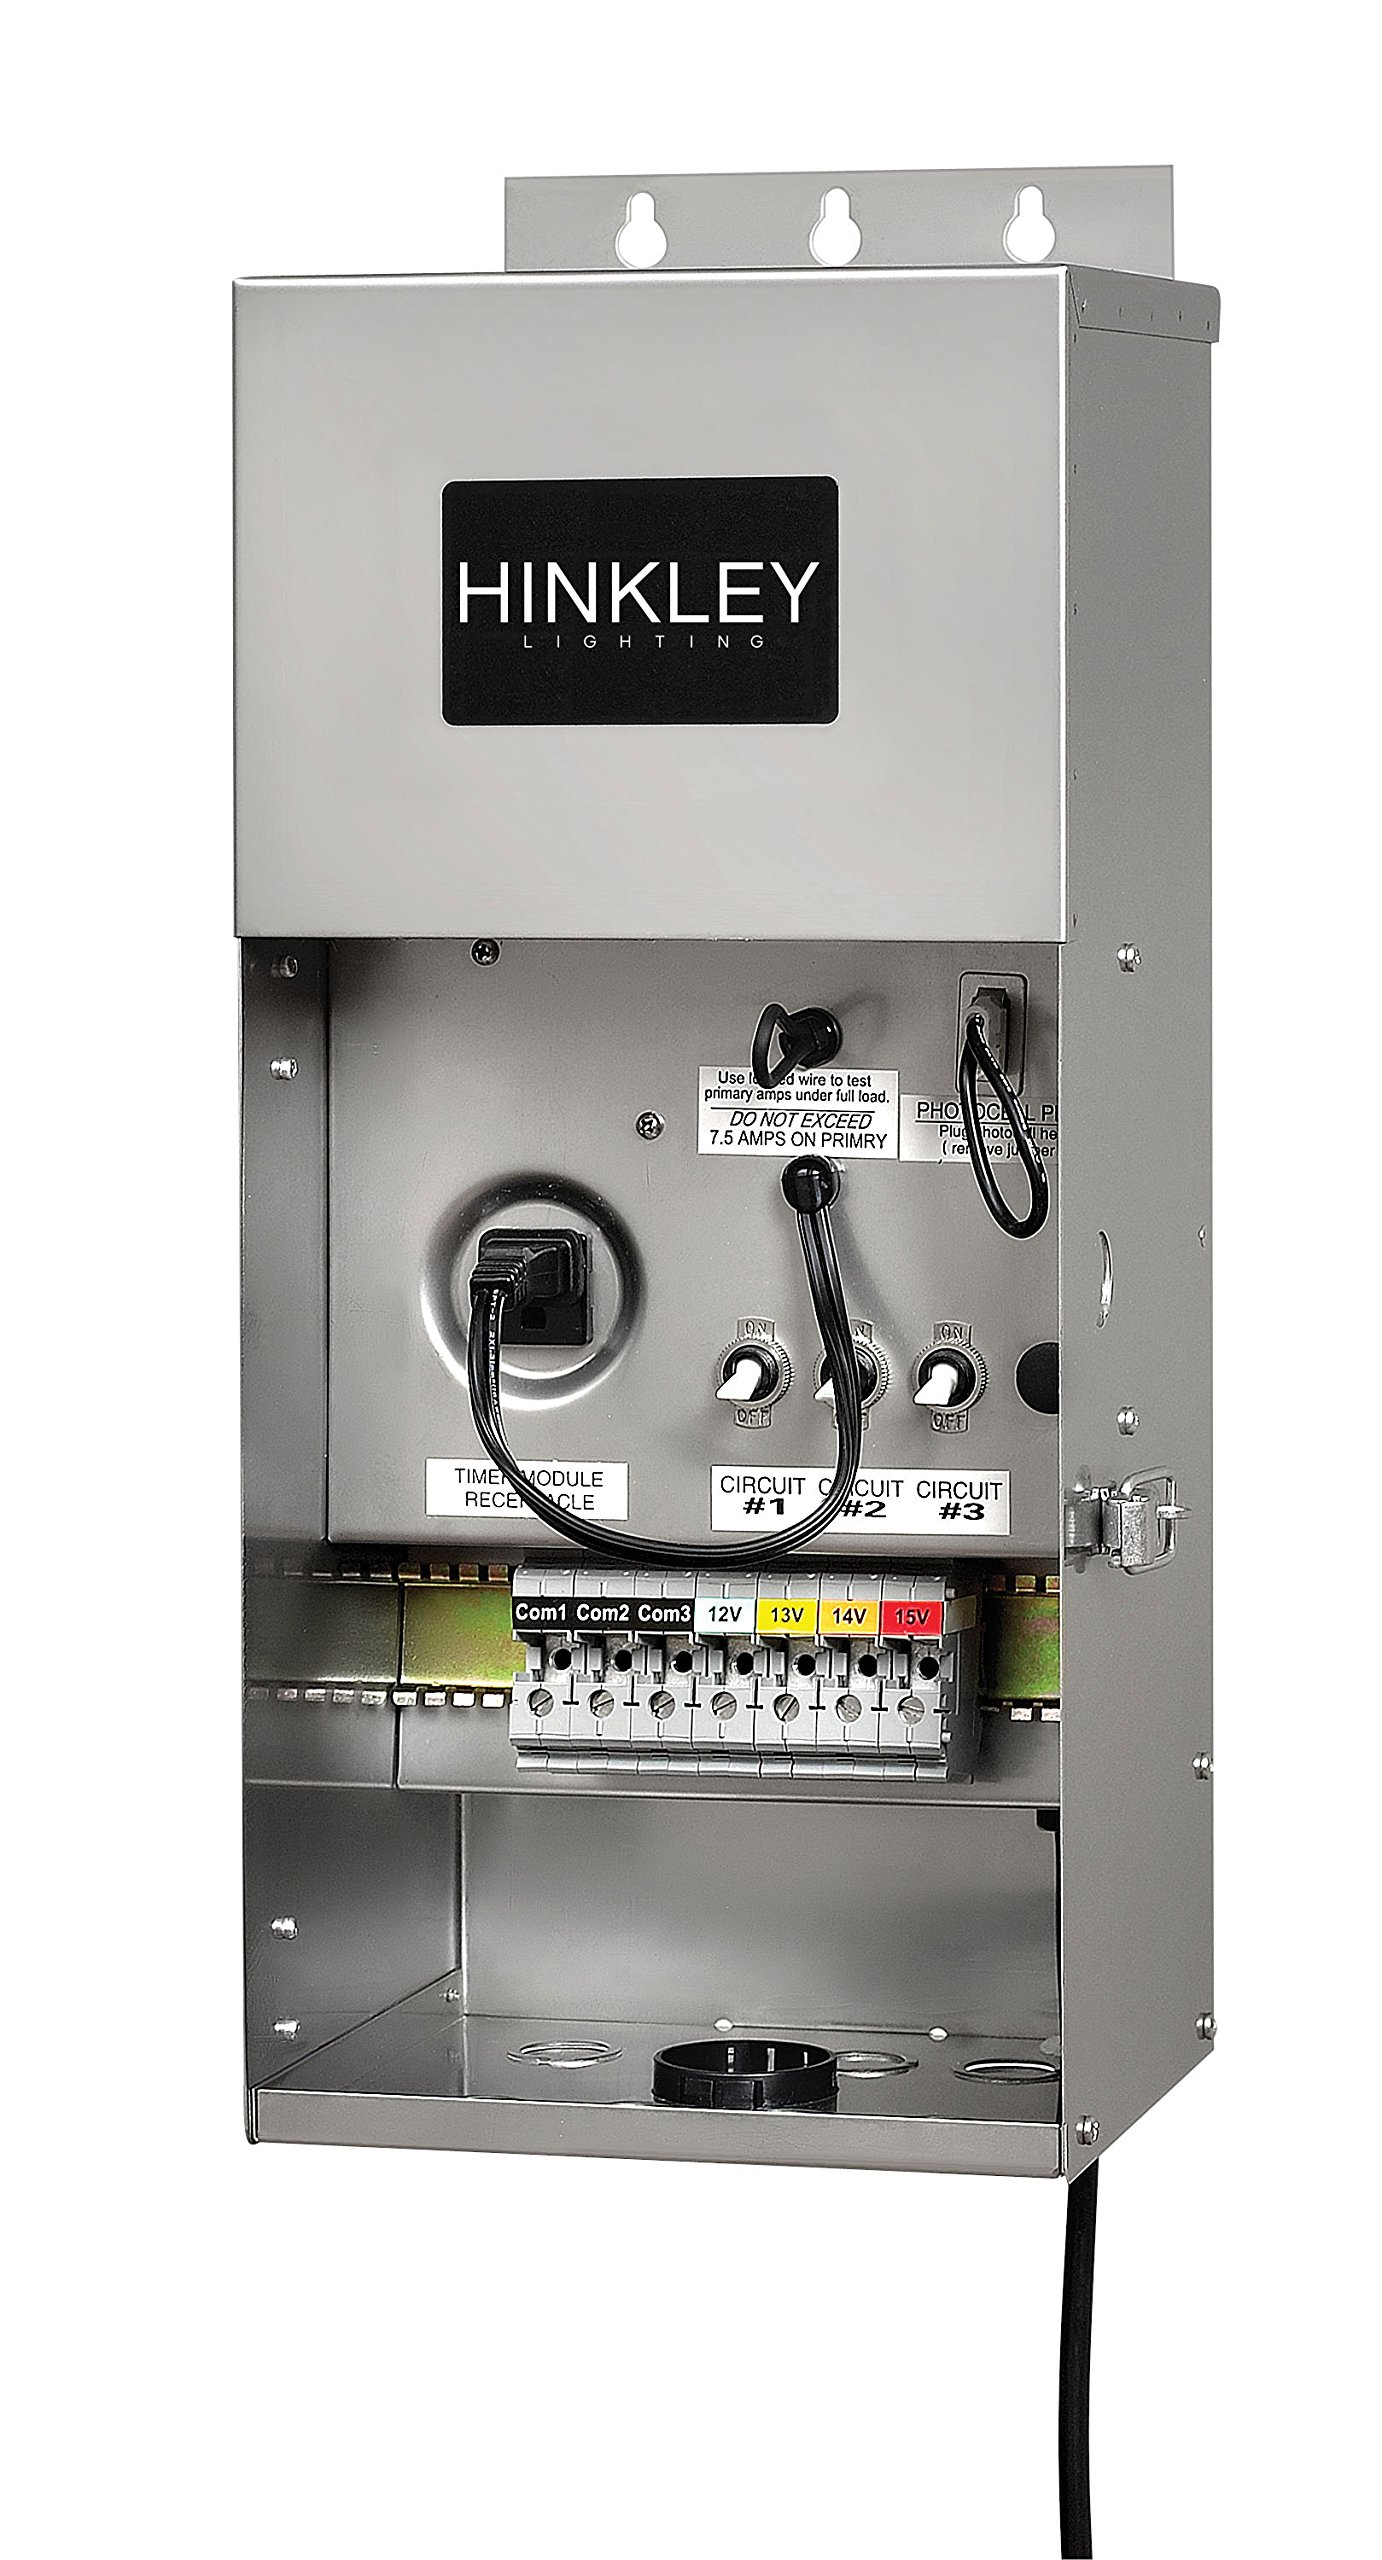 Hinkley Lighting 0900SS Pro Series Multi-Tap 12-15 Volt 900 Watt Transformer, Stainless Steel by Hinkley